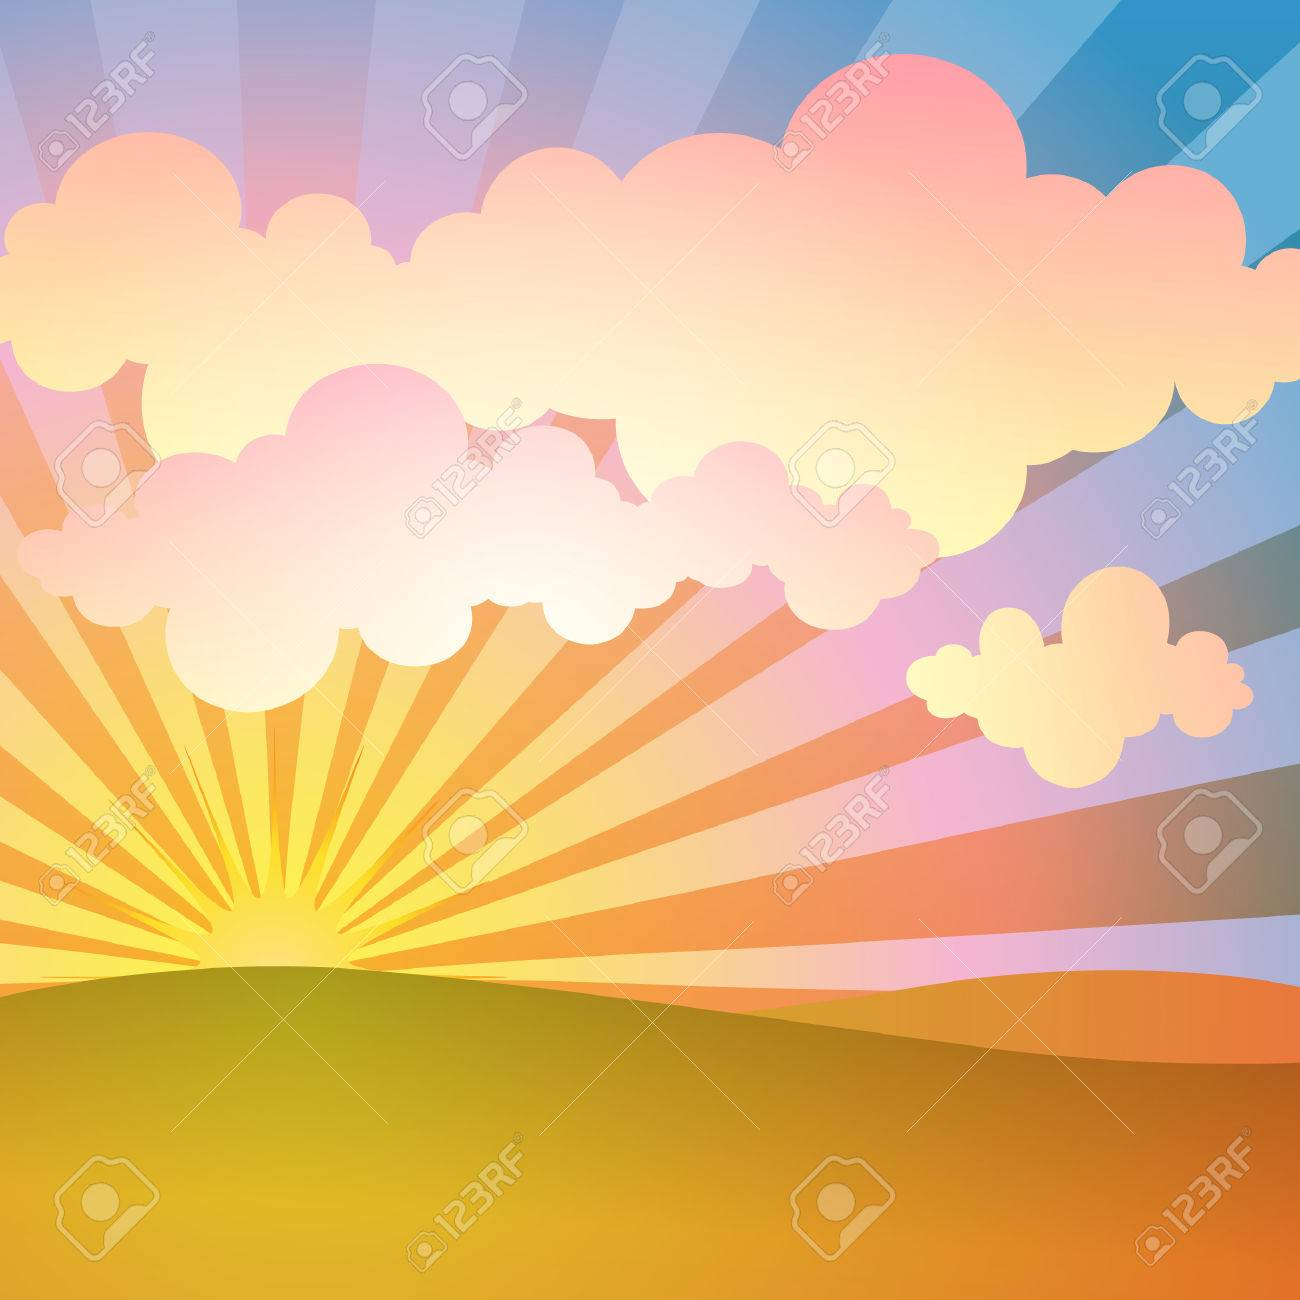 A Simple Landscape Background with Sunrise, Sunset Stock Vector - 8697798